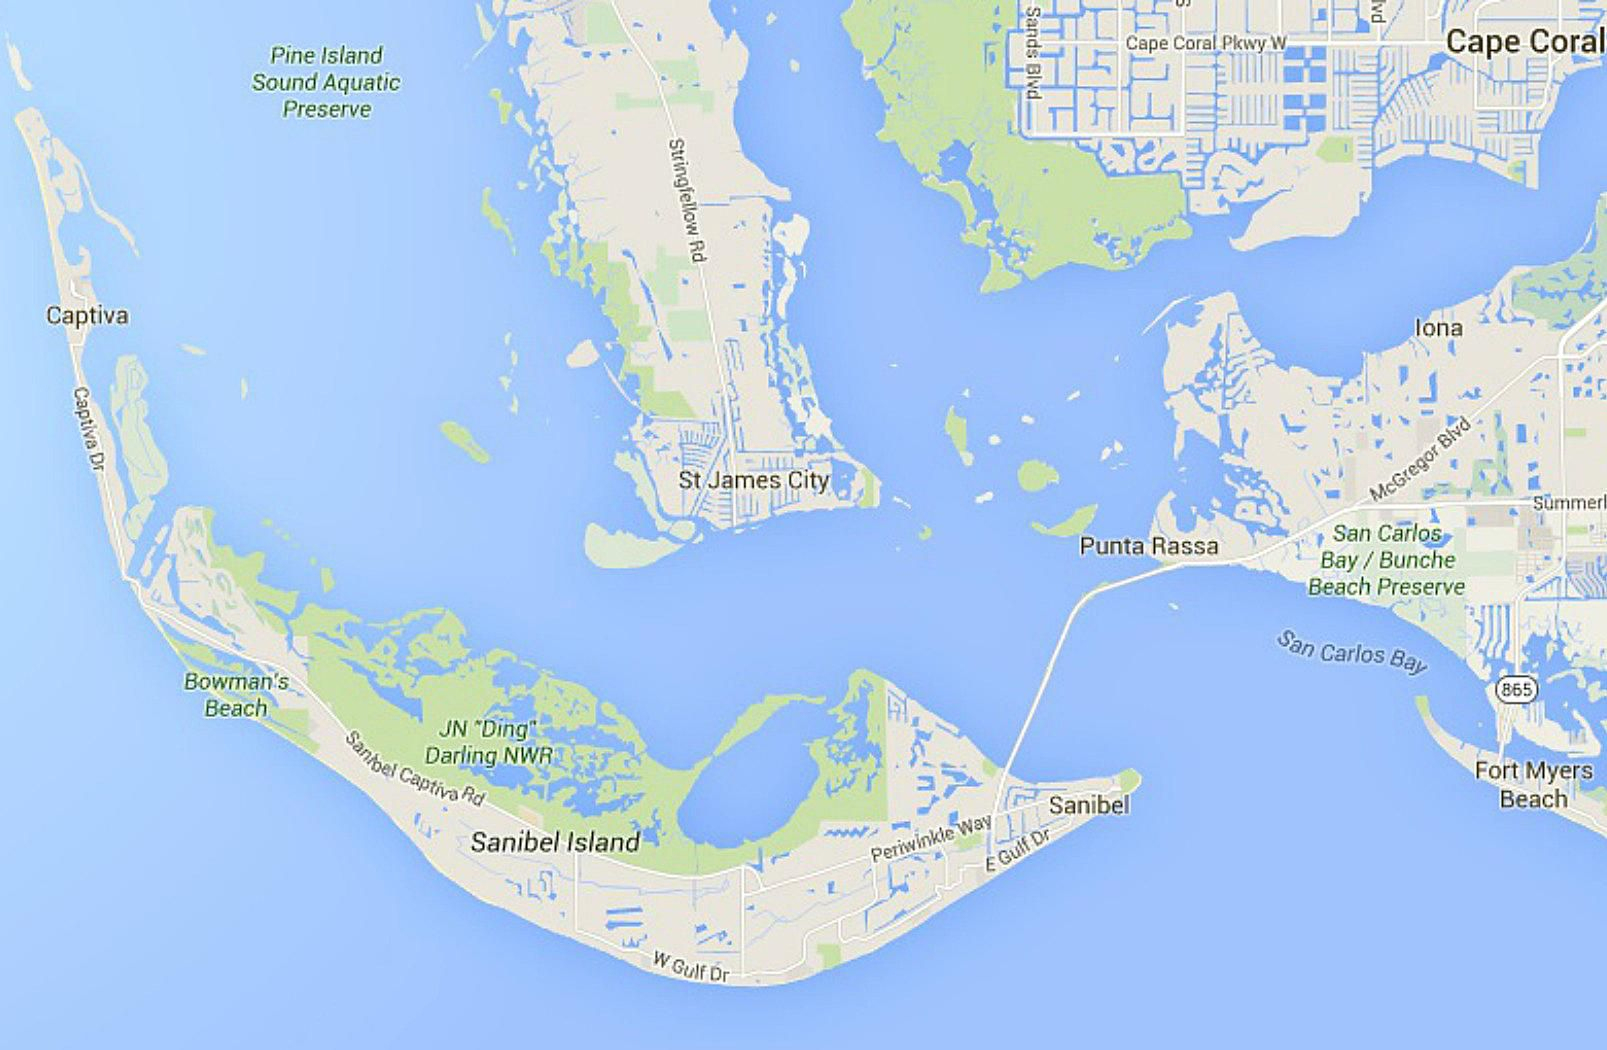 Maps Of Florida: Orlando, Tampa, Miami, Keys, And More - Map Of Florida Including Boca Raton